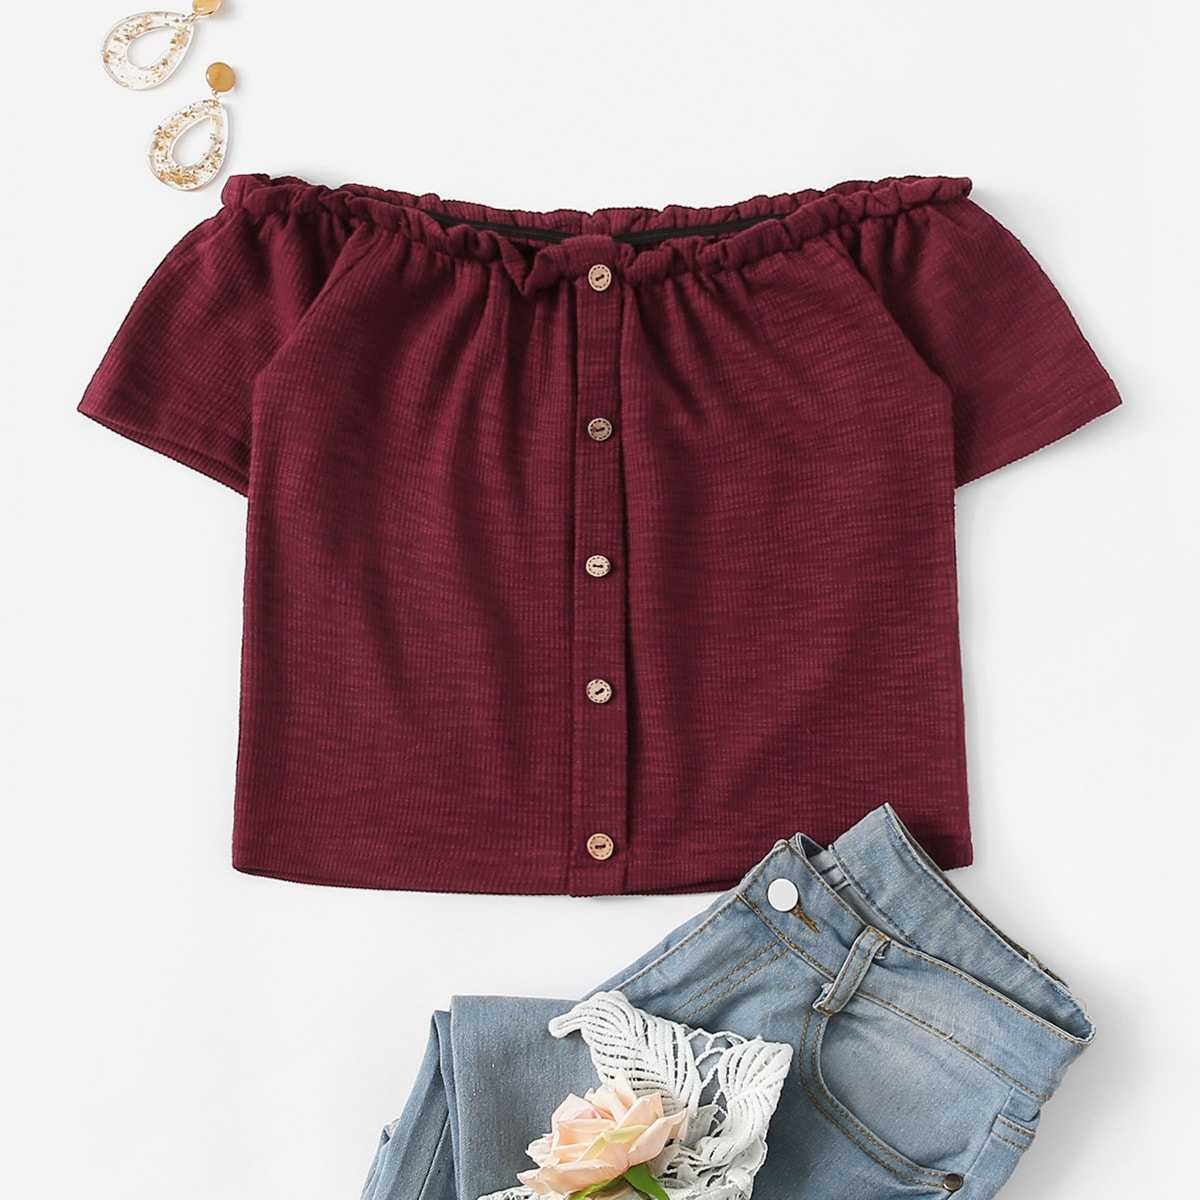 Frill Neck Button Through Tee in Burgundy by ROMWE on GOOFASH